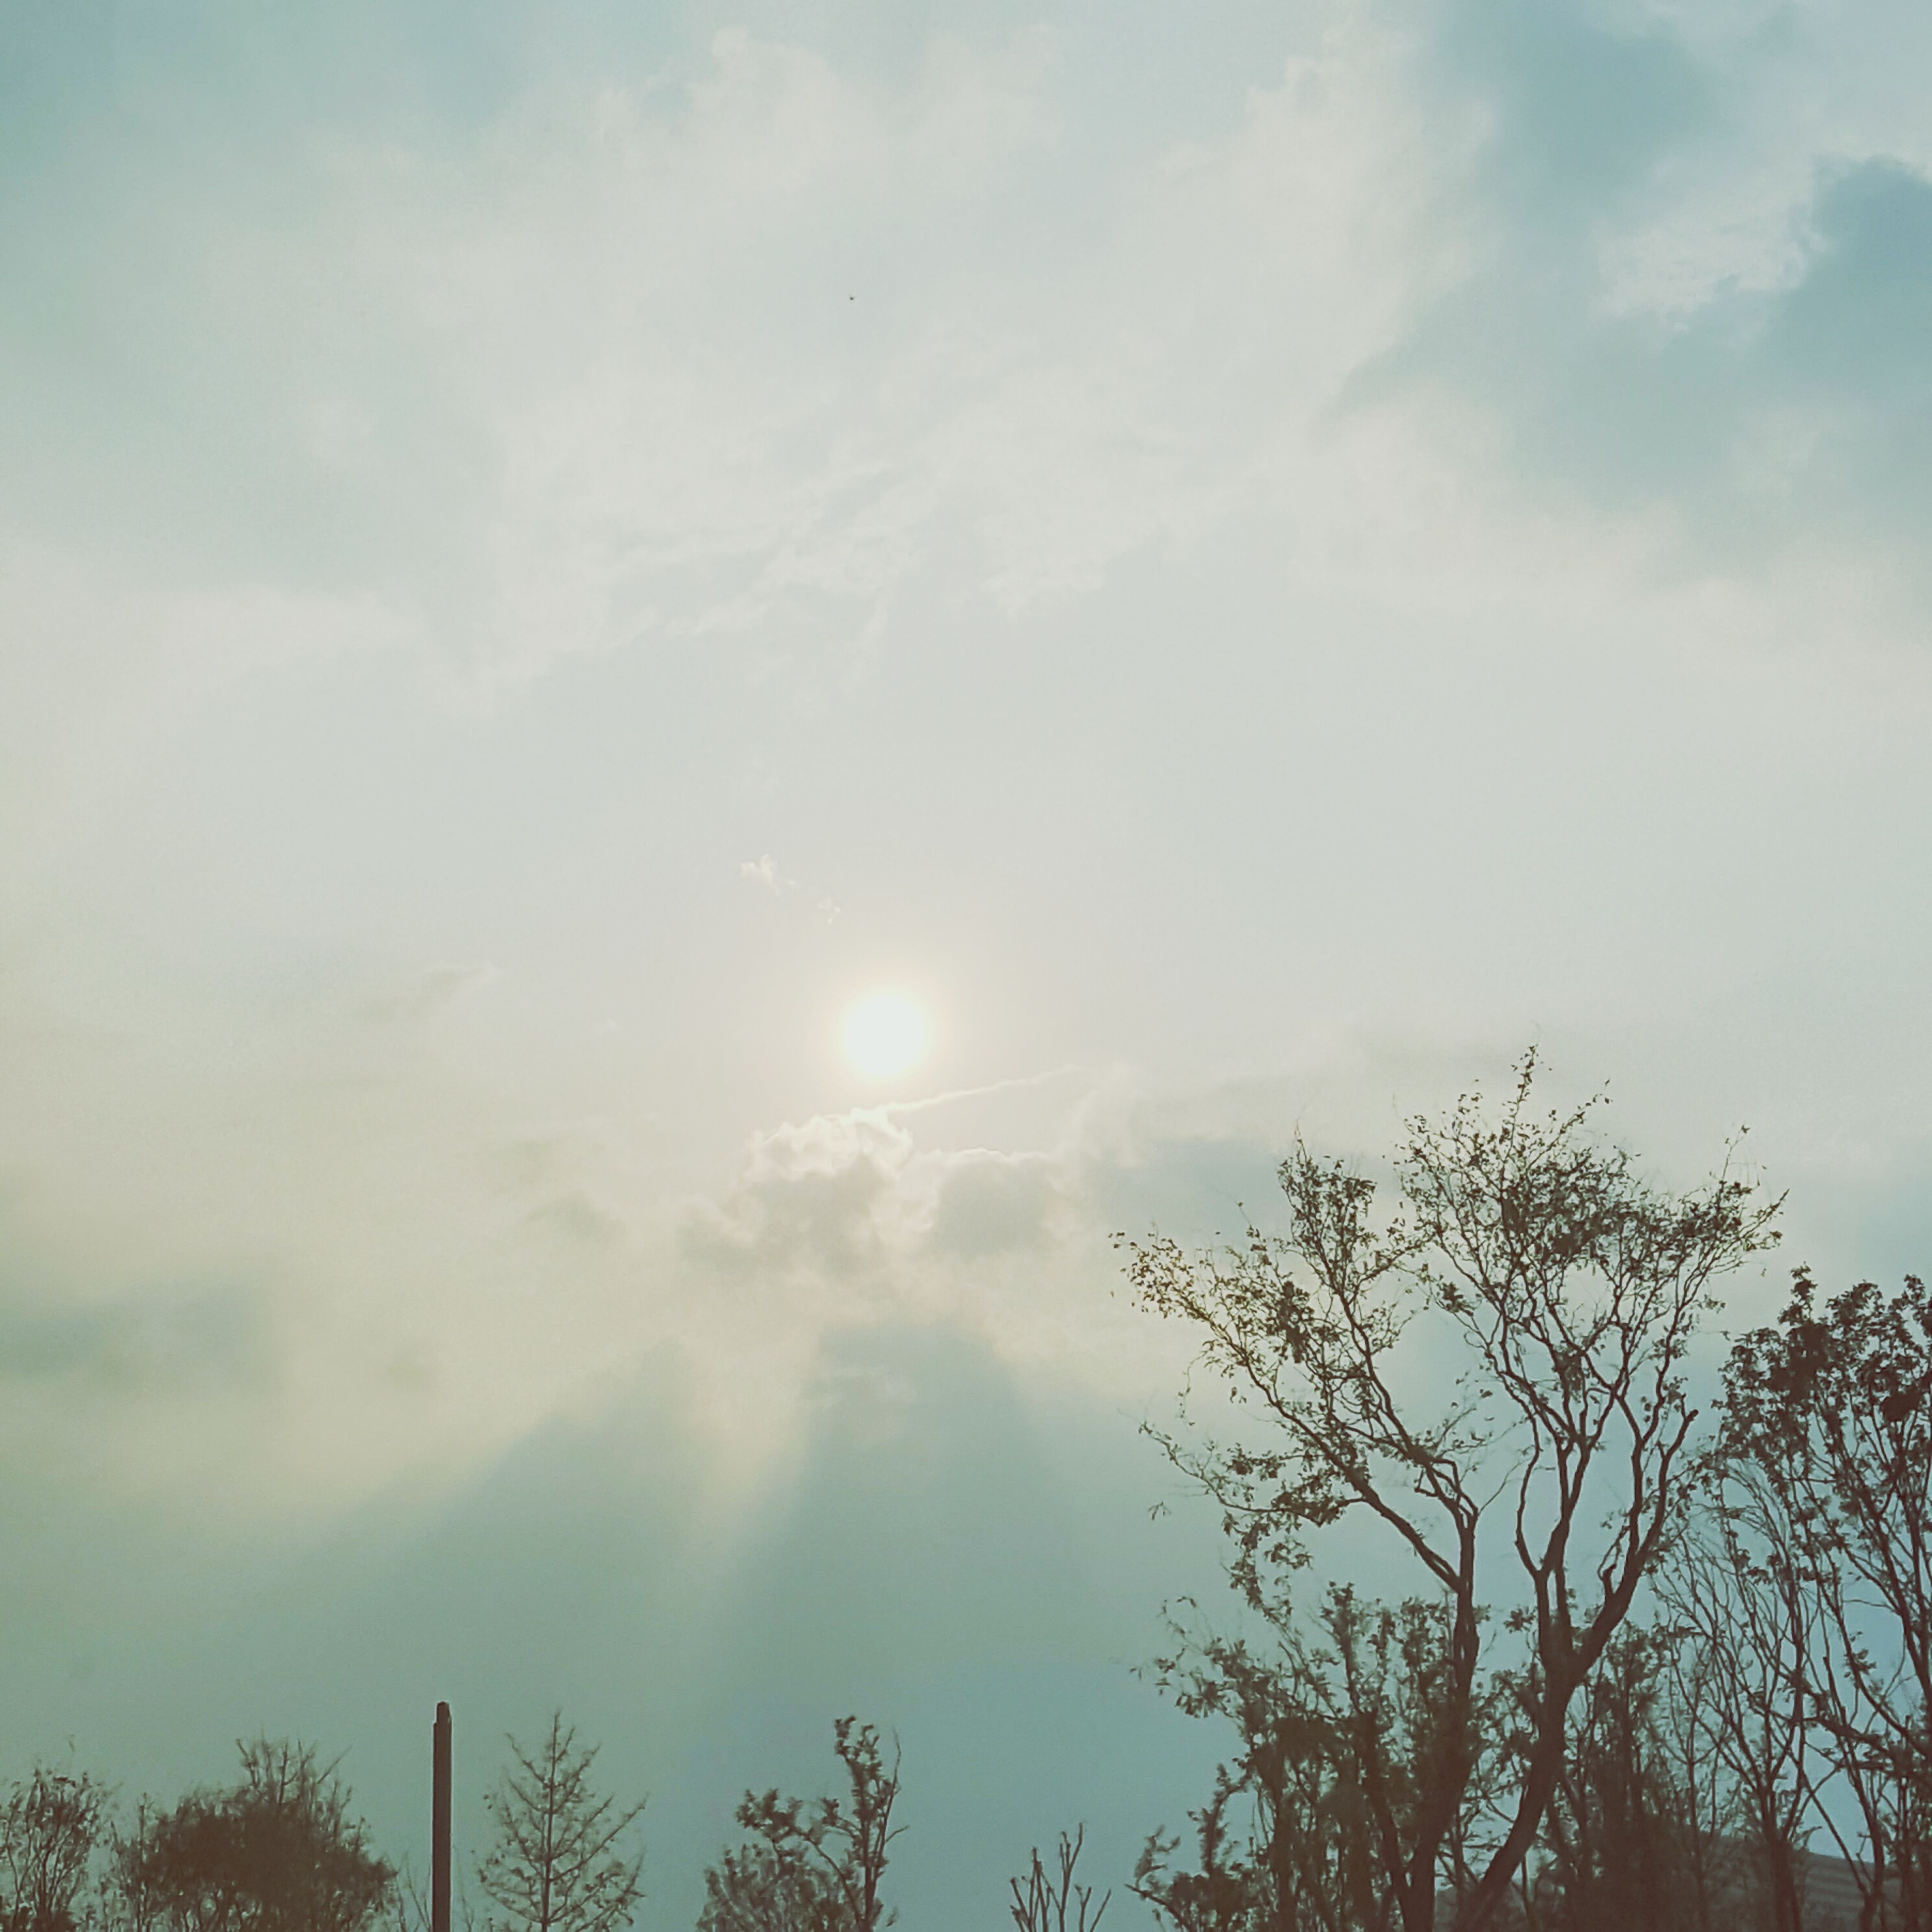 tree, sun, sky, low angle view, tranquil scene, cloud - sky, scenics, beauty in nature, tranquility, nature, cloud, growth, high section, branch, day, outdoors, lens flare, cloudy, cloudscape, outline, bright, no people, treetop, majestic, non-urban scene